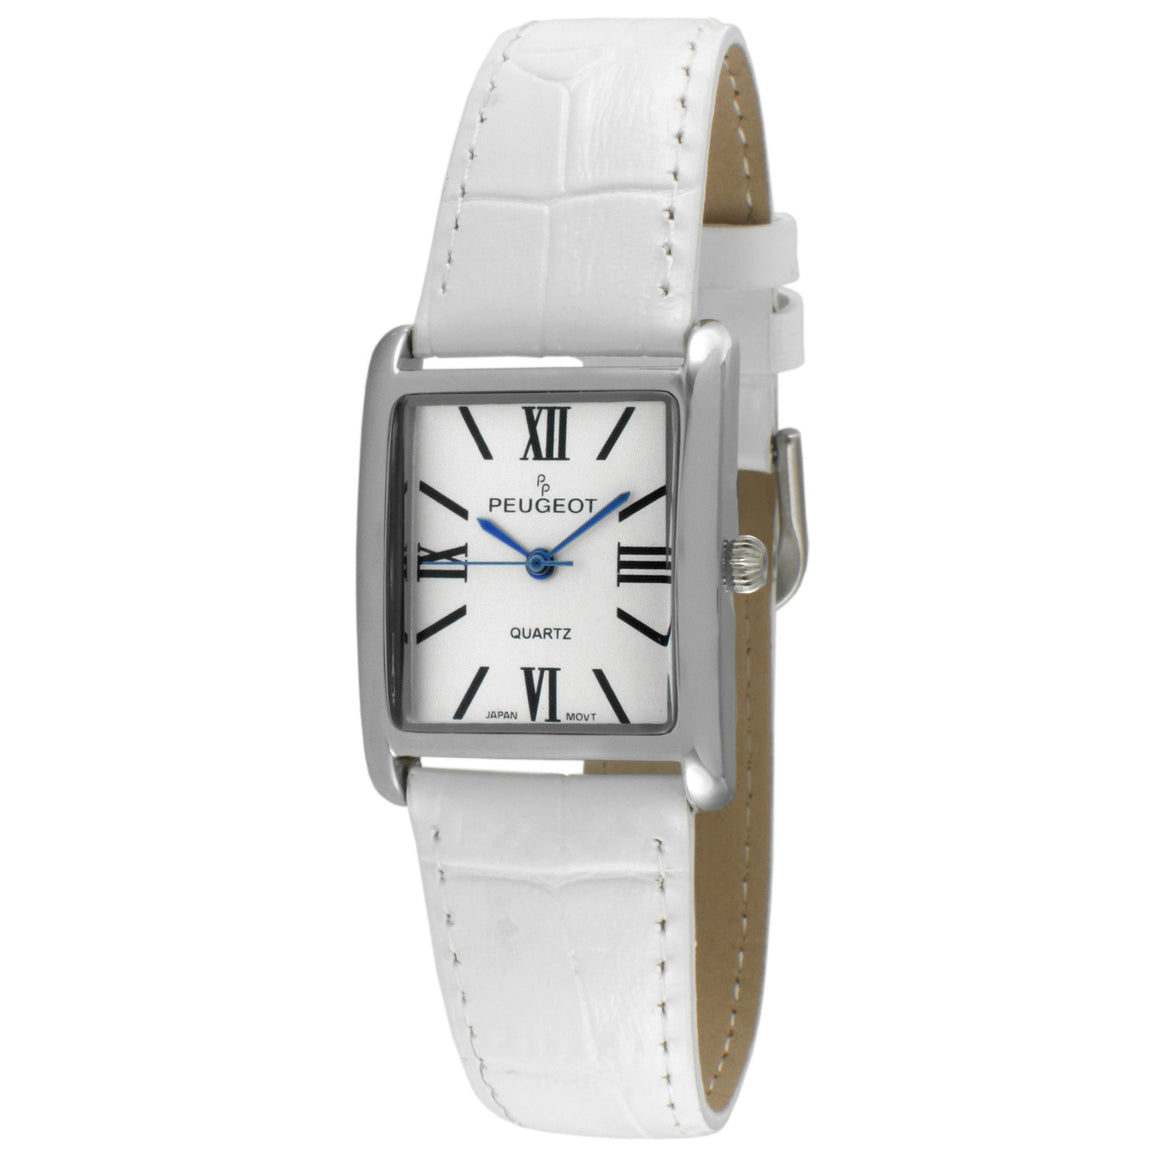 The Roma Women's Leather Watch by Peugeot- Silver/White - Peugeot Watches